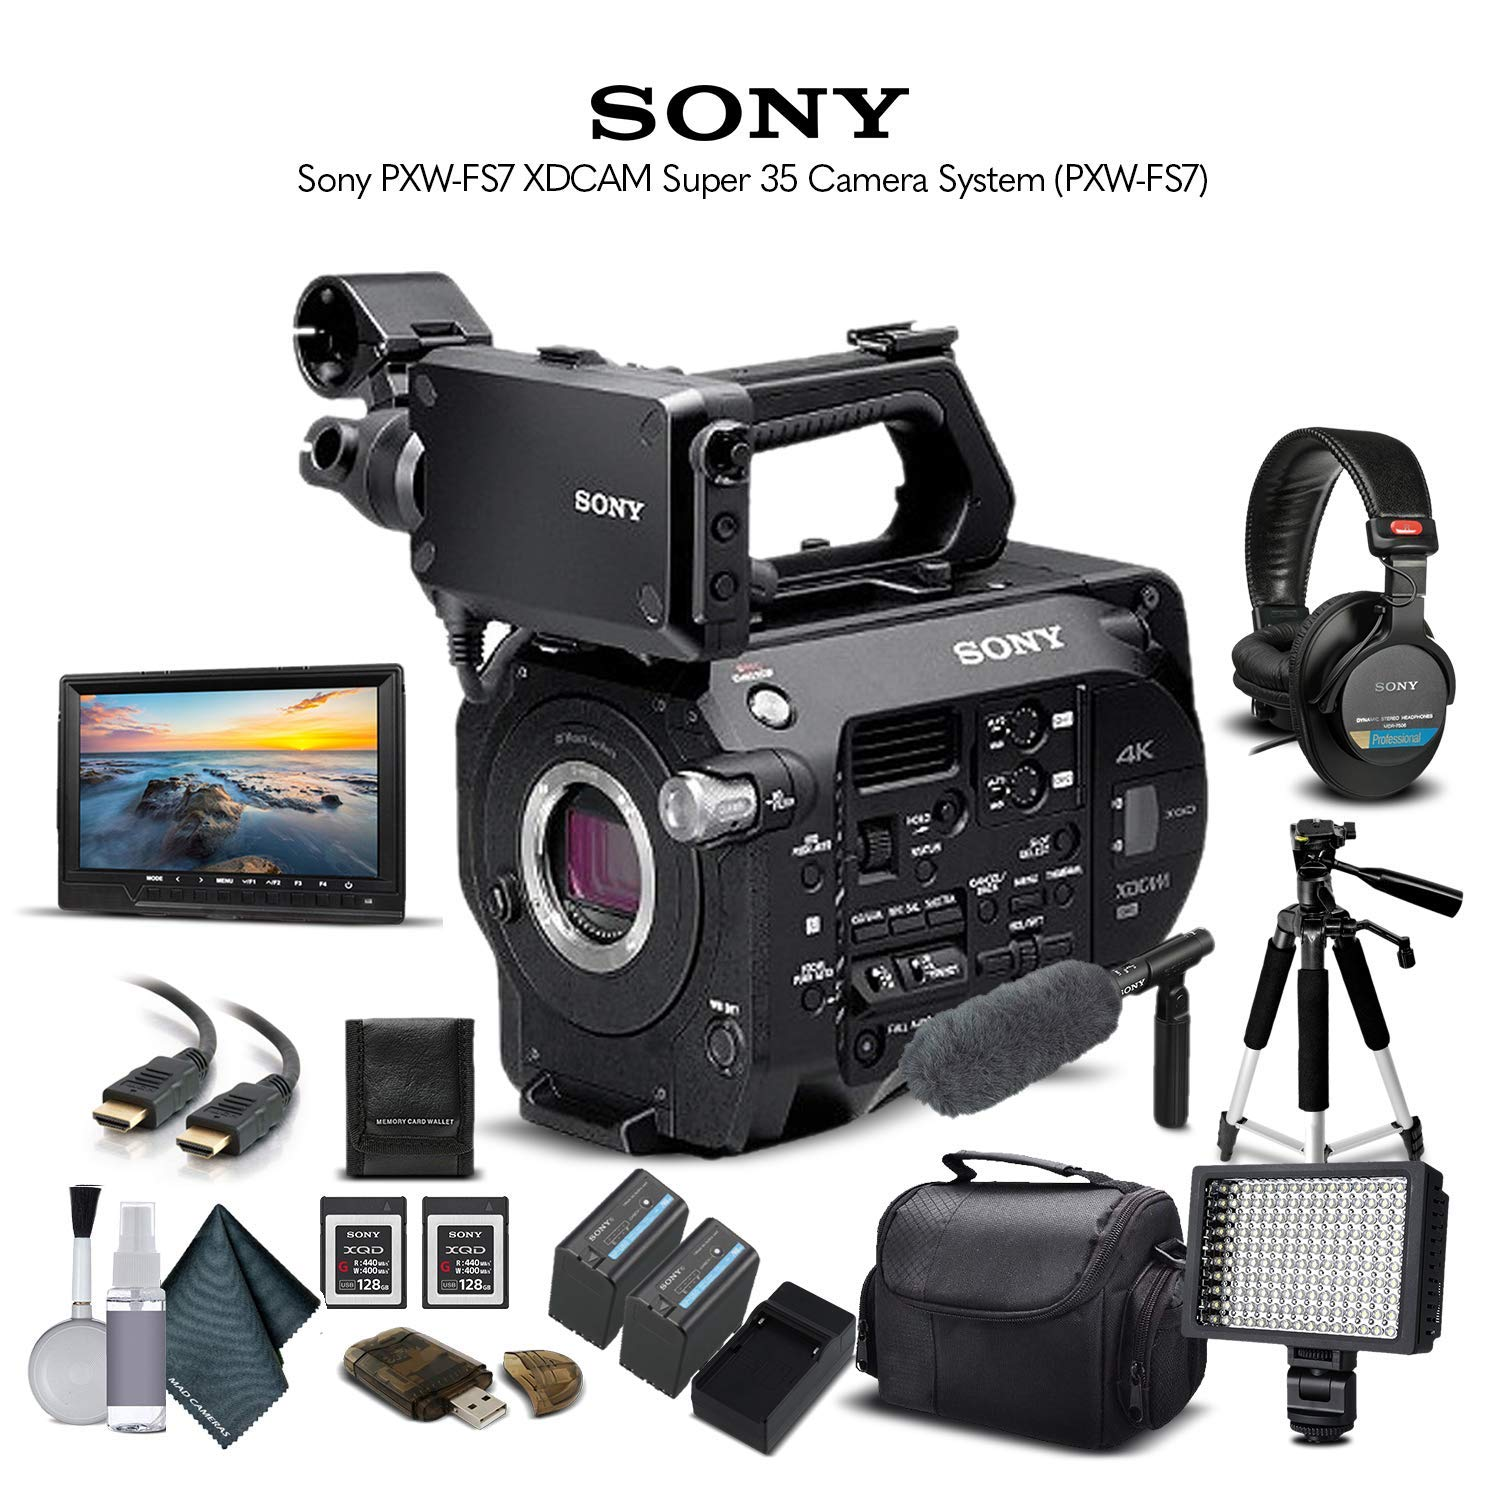 Sony PXW-FS7 XDCAM Super 35 Camera System (PXW-FS7) with 2-64GB Memory Card, 2 Extra Batteries, UV Filter, LED Light, Case, Tripod, Sony Shotgun Mic, Sony MDR-7506 Headphones - Professional Bundle by Mad Cameras